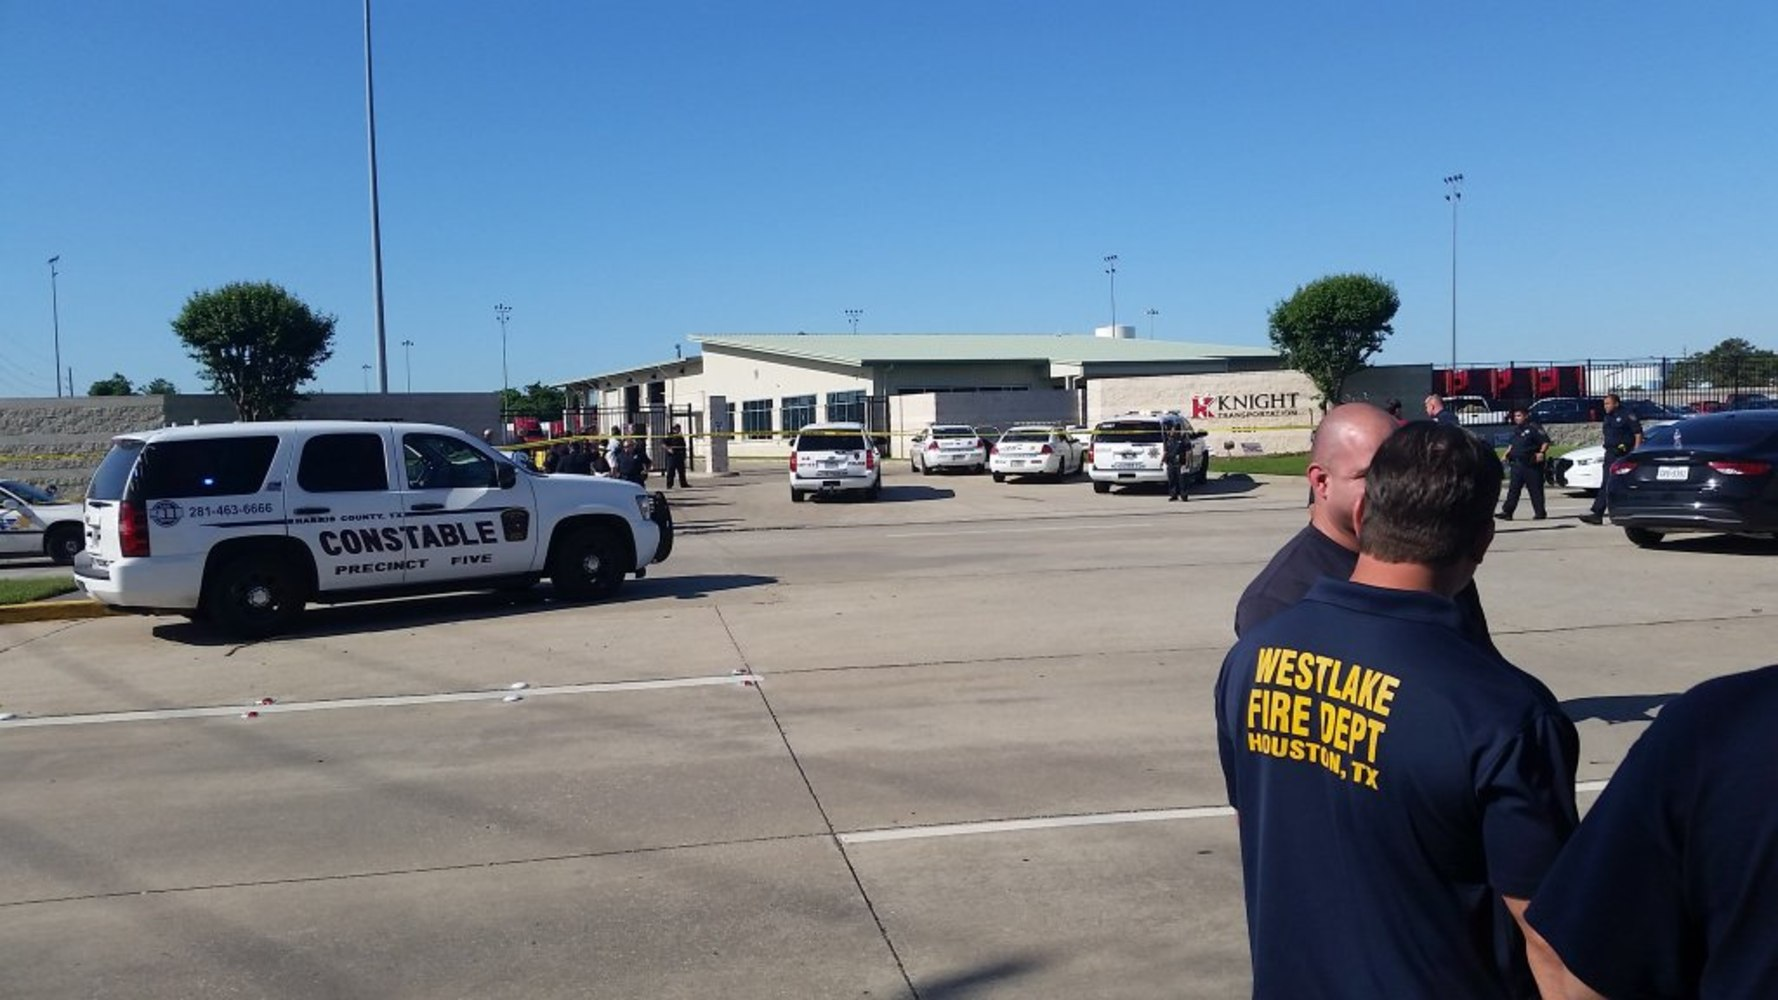 Two Dead in Shooting at Knight Transportation Building in Katy ...